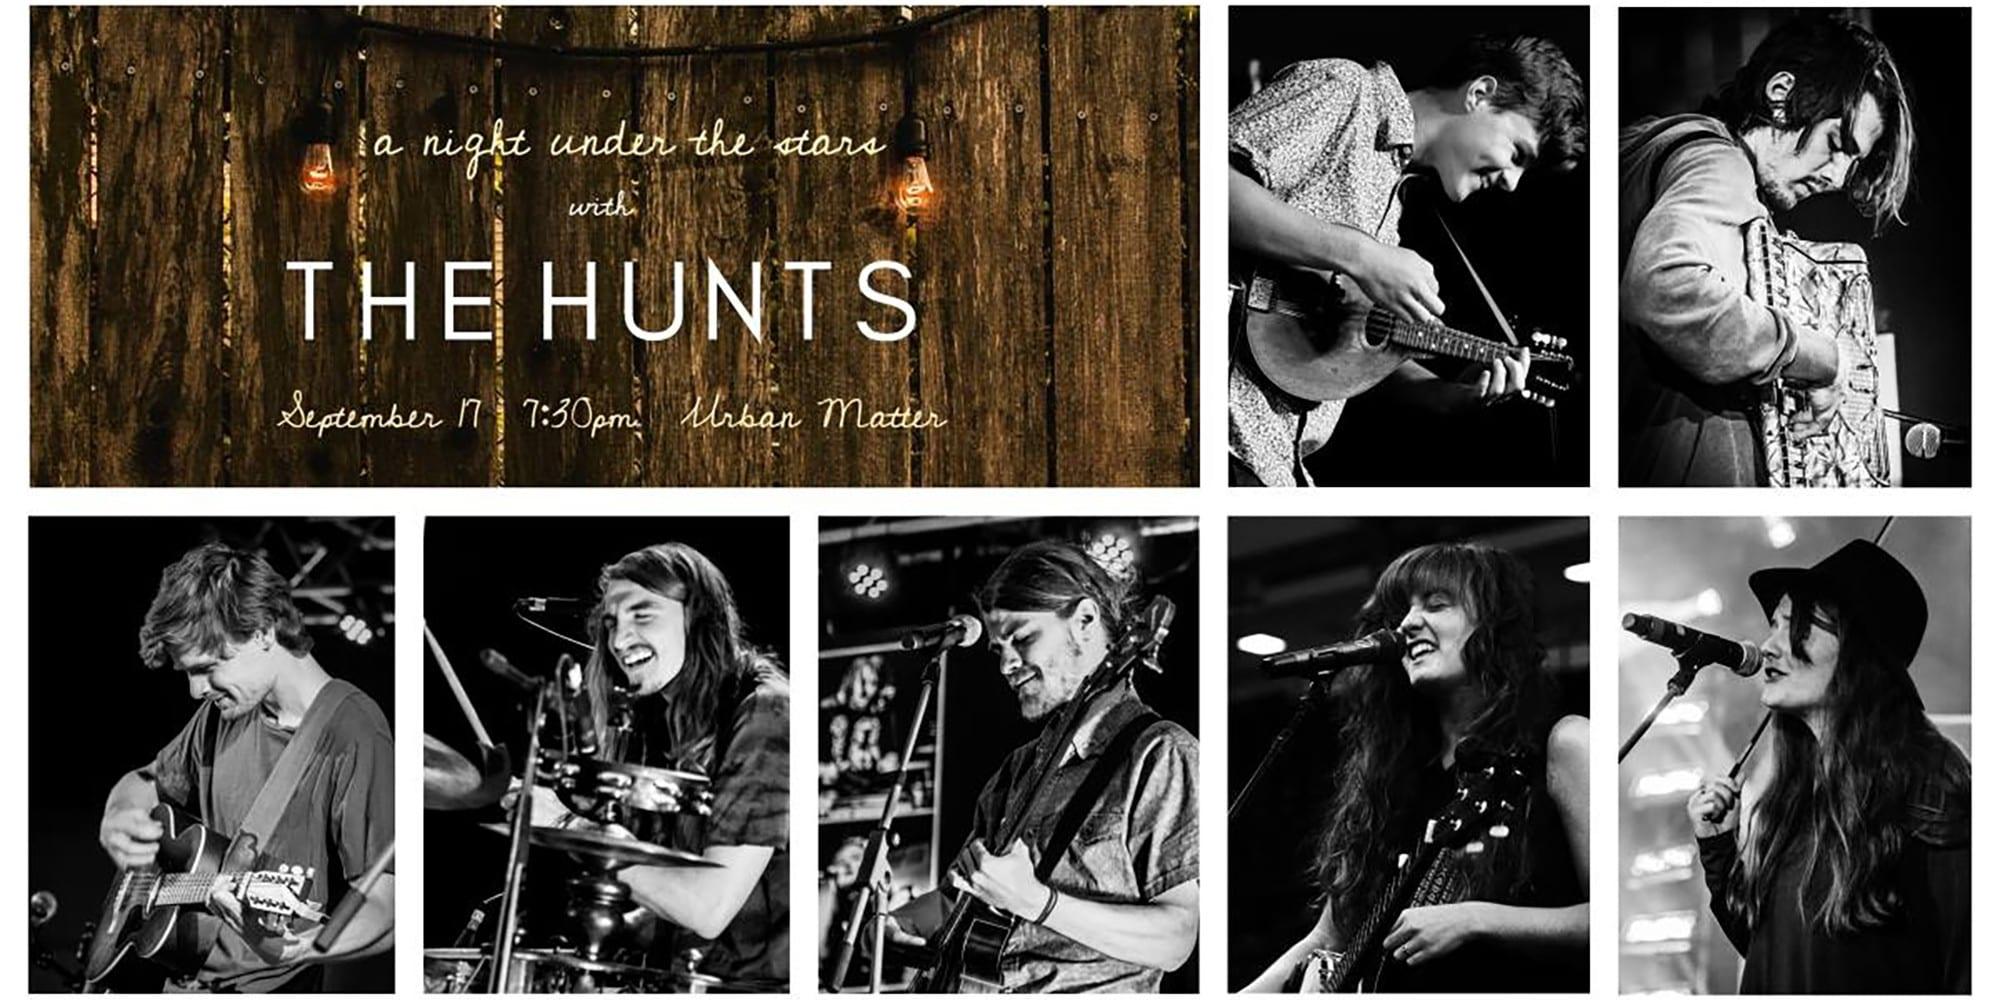 The Hunts at Urban Matter